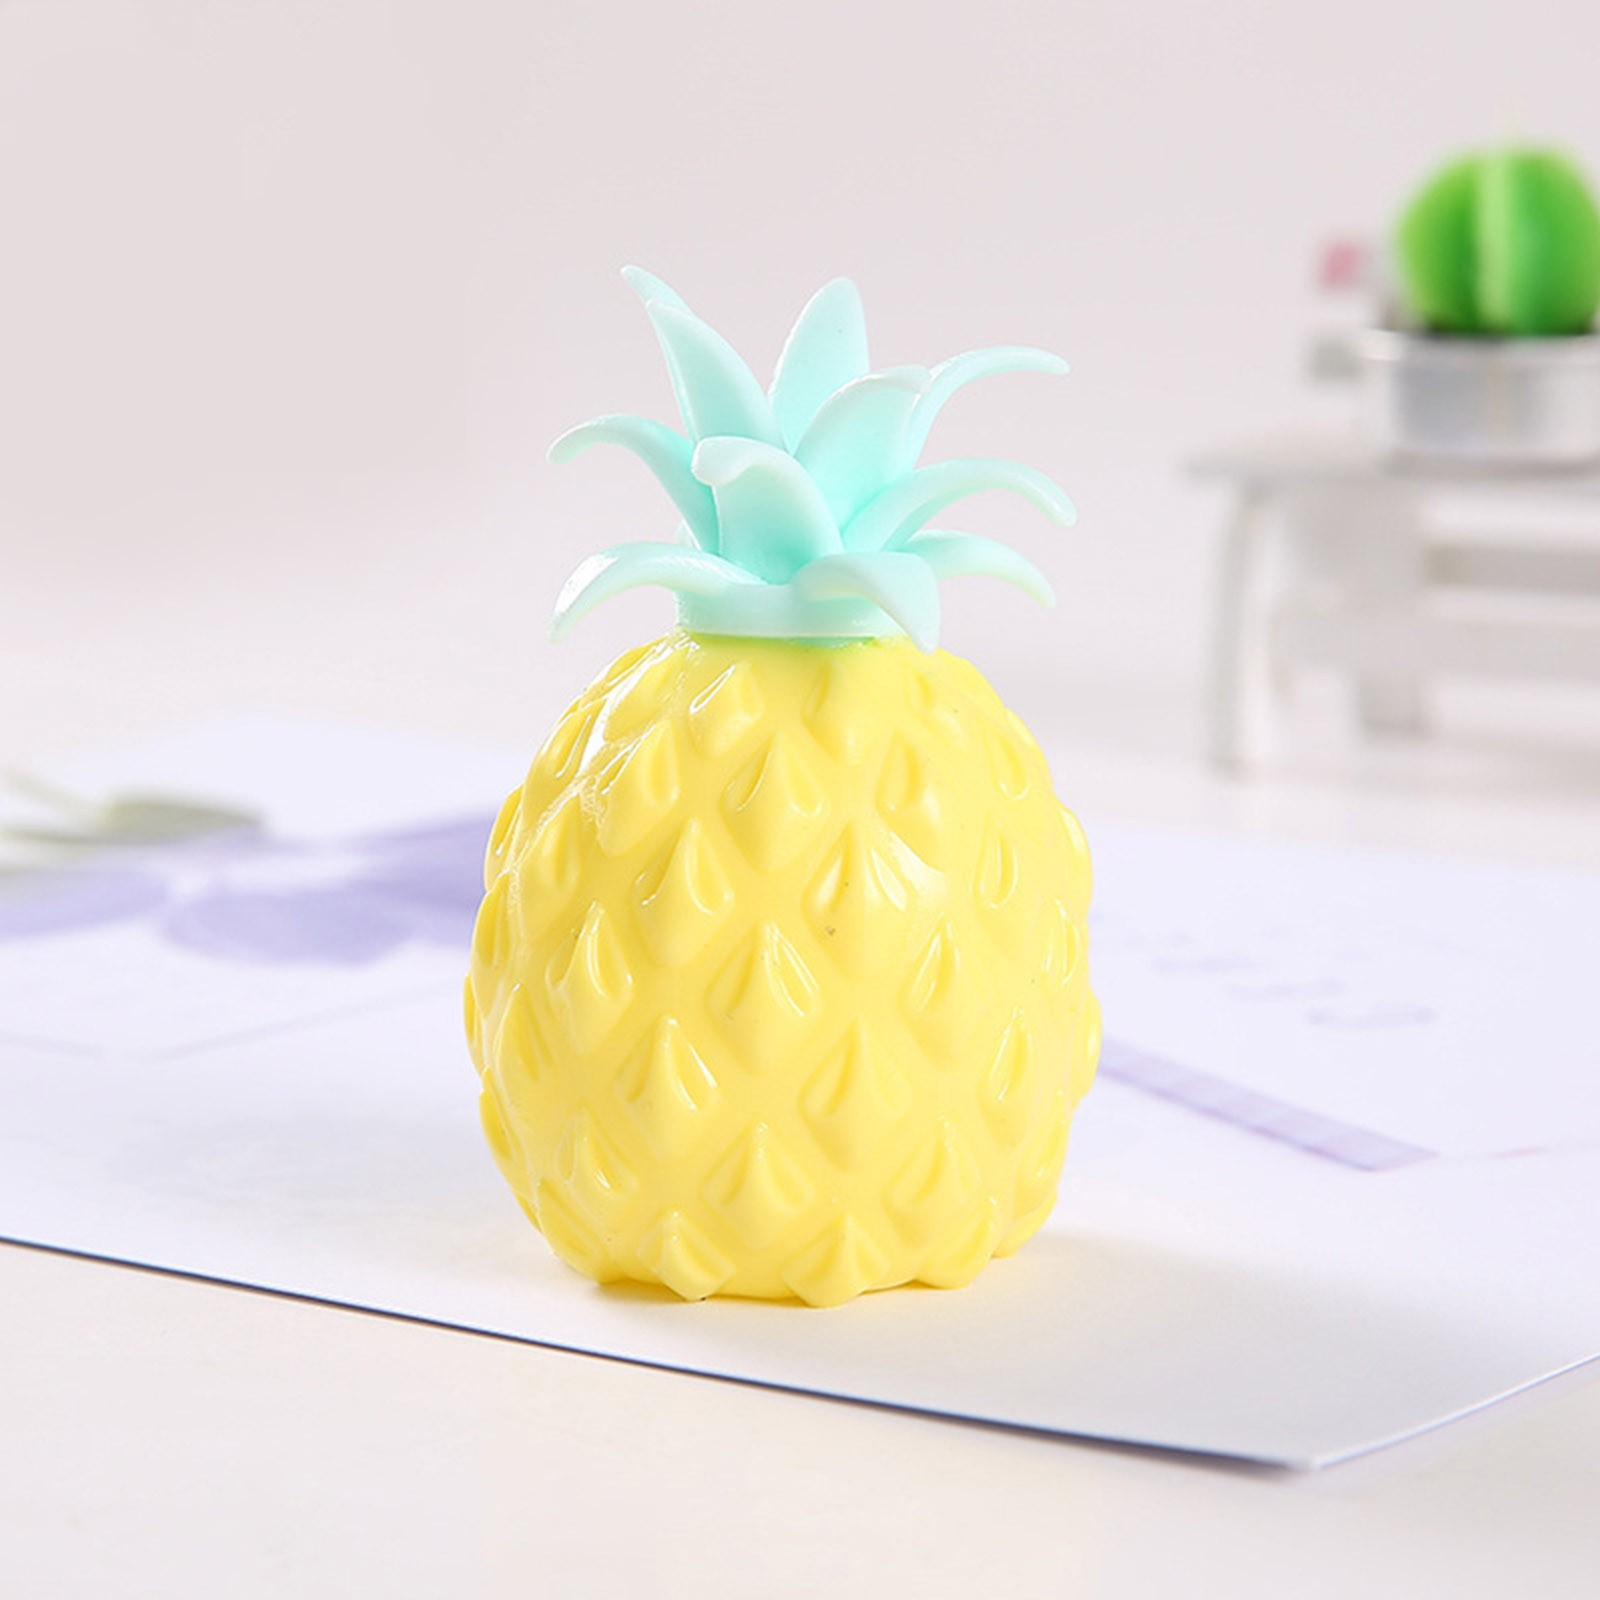 2021 Fidget Toys New Simulation Flour Pineapple Decompression Toy Office Pressure Release img3